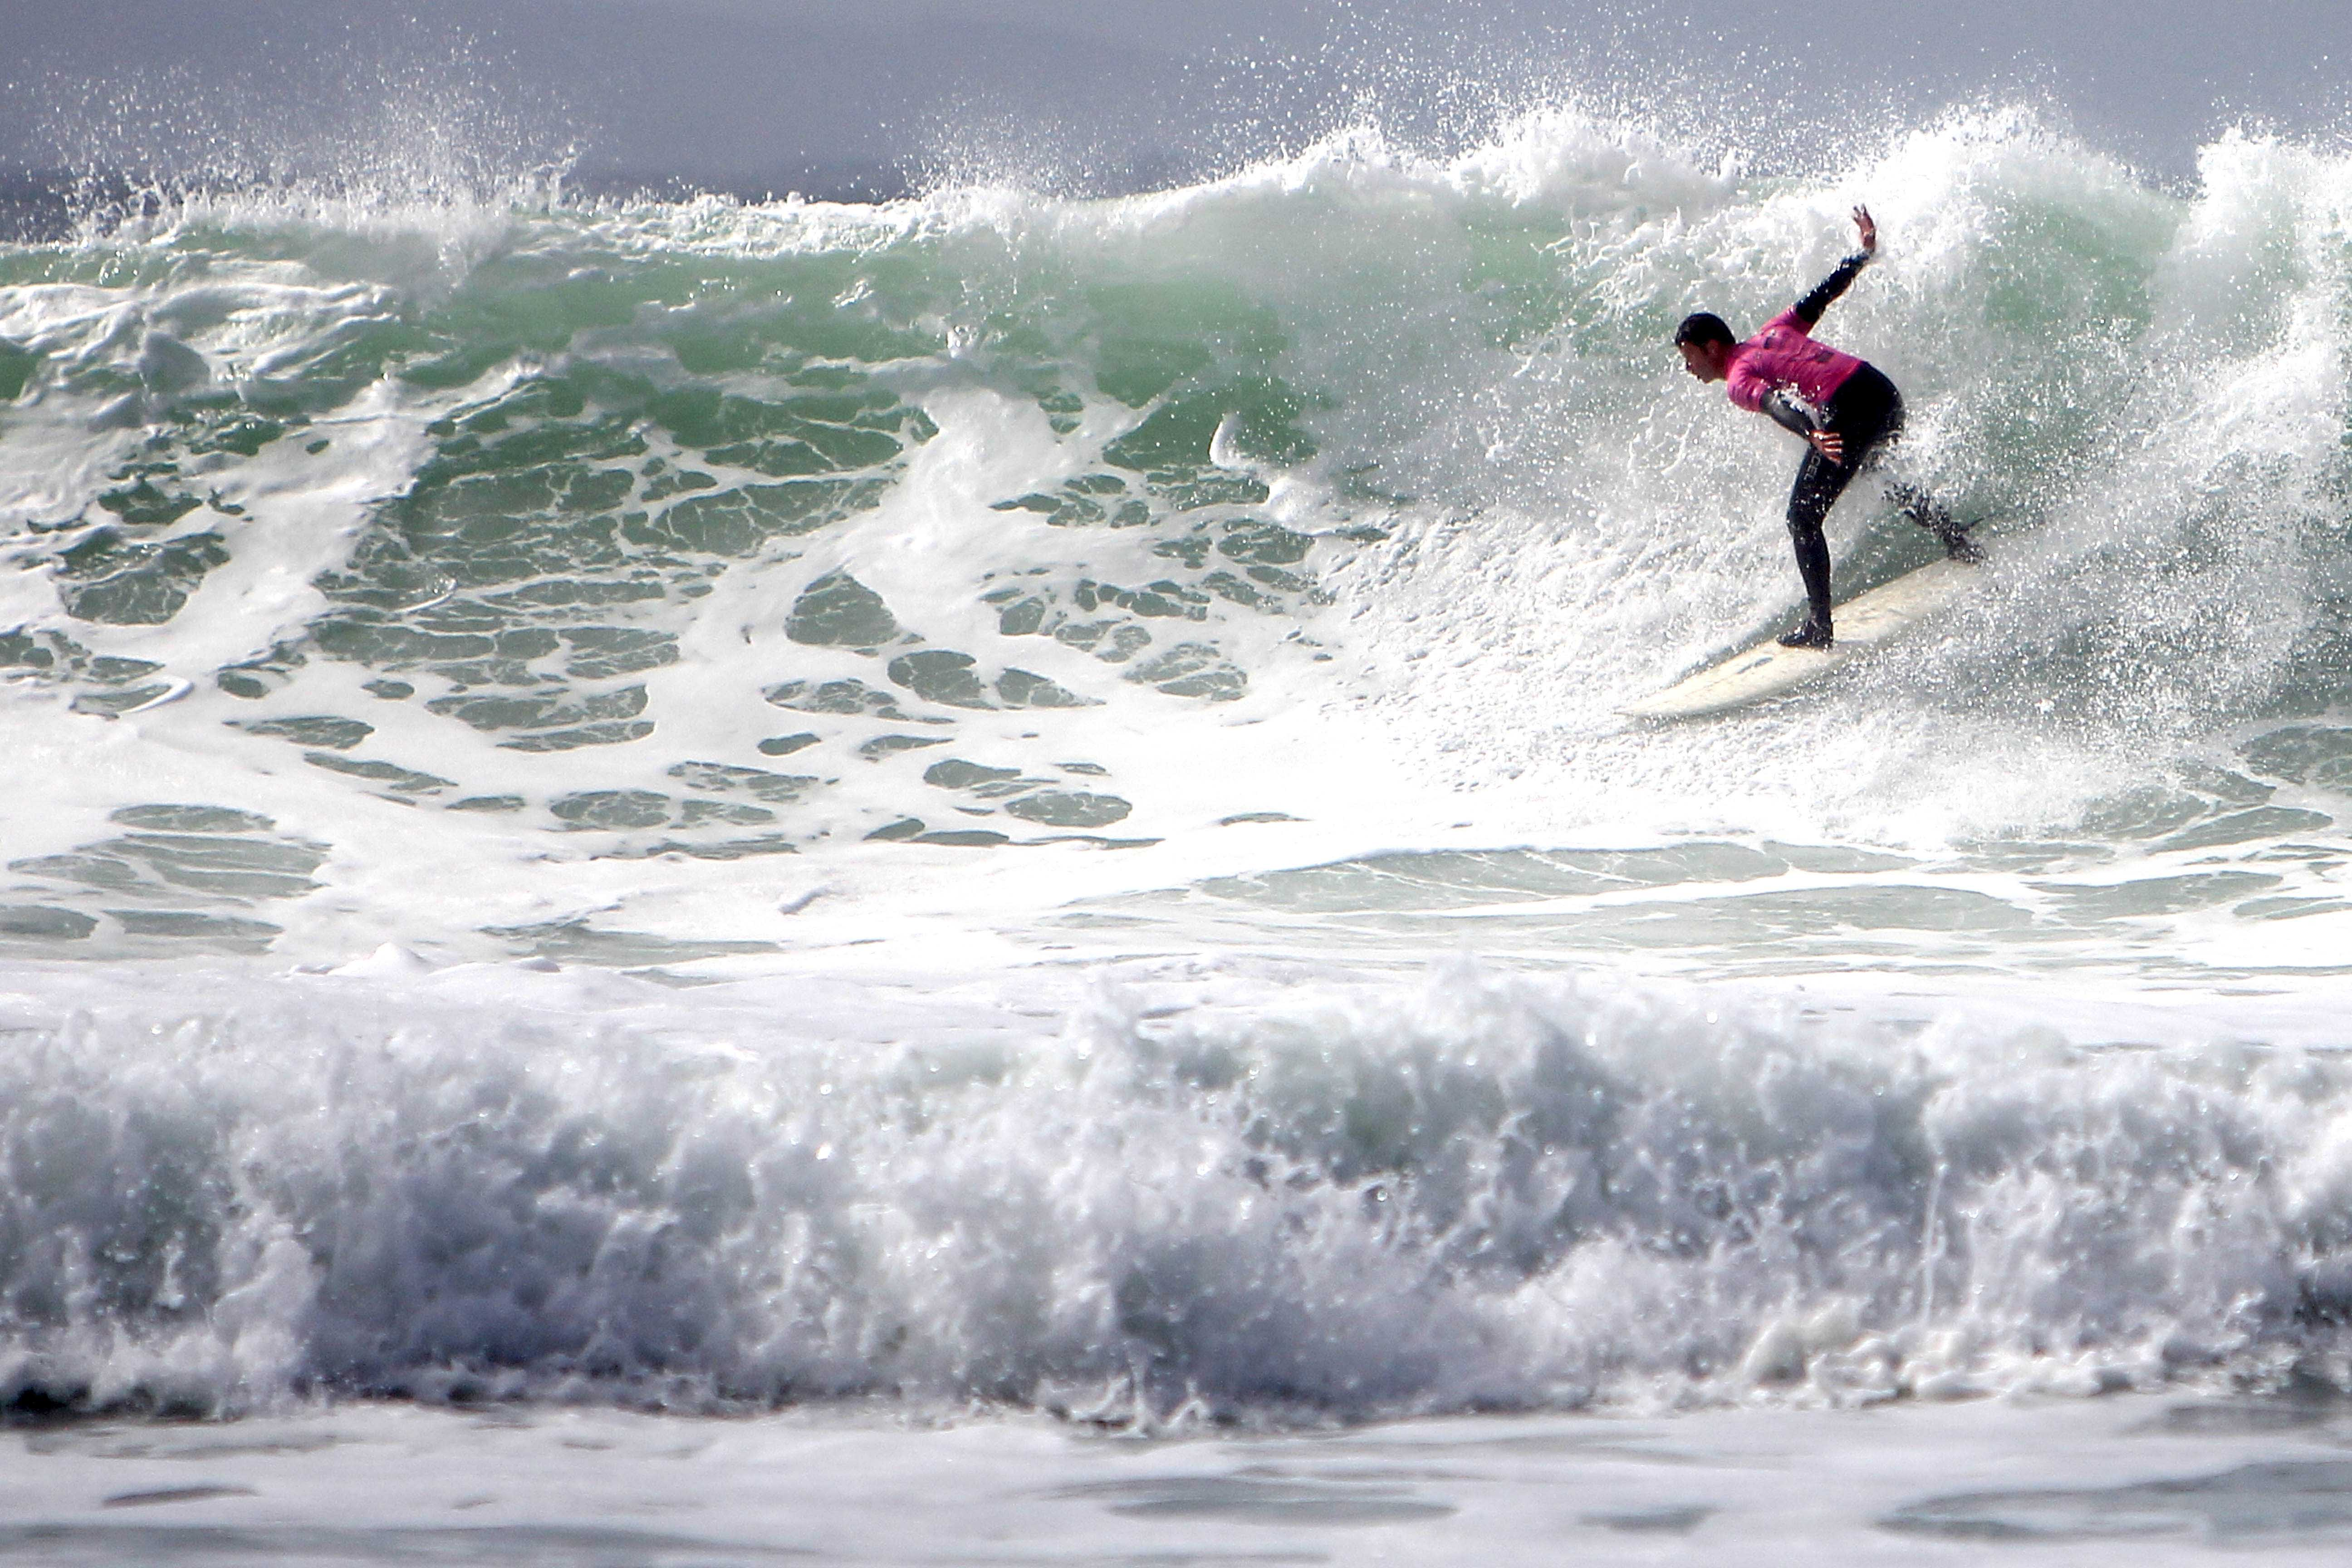 The 2015 Reef Vintners' Surf Classic Goes Down in Maxing Stilbaai Conditions photo